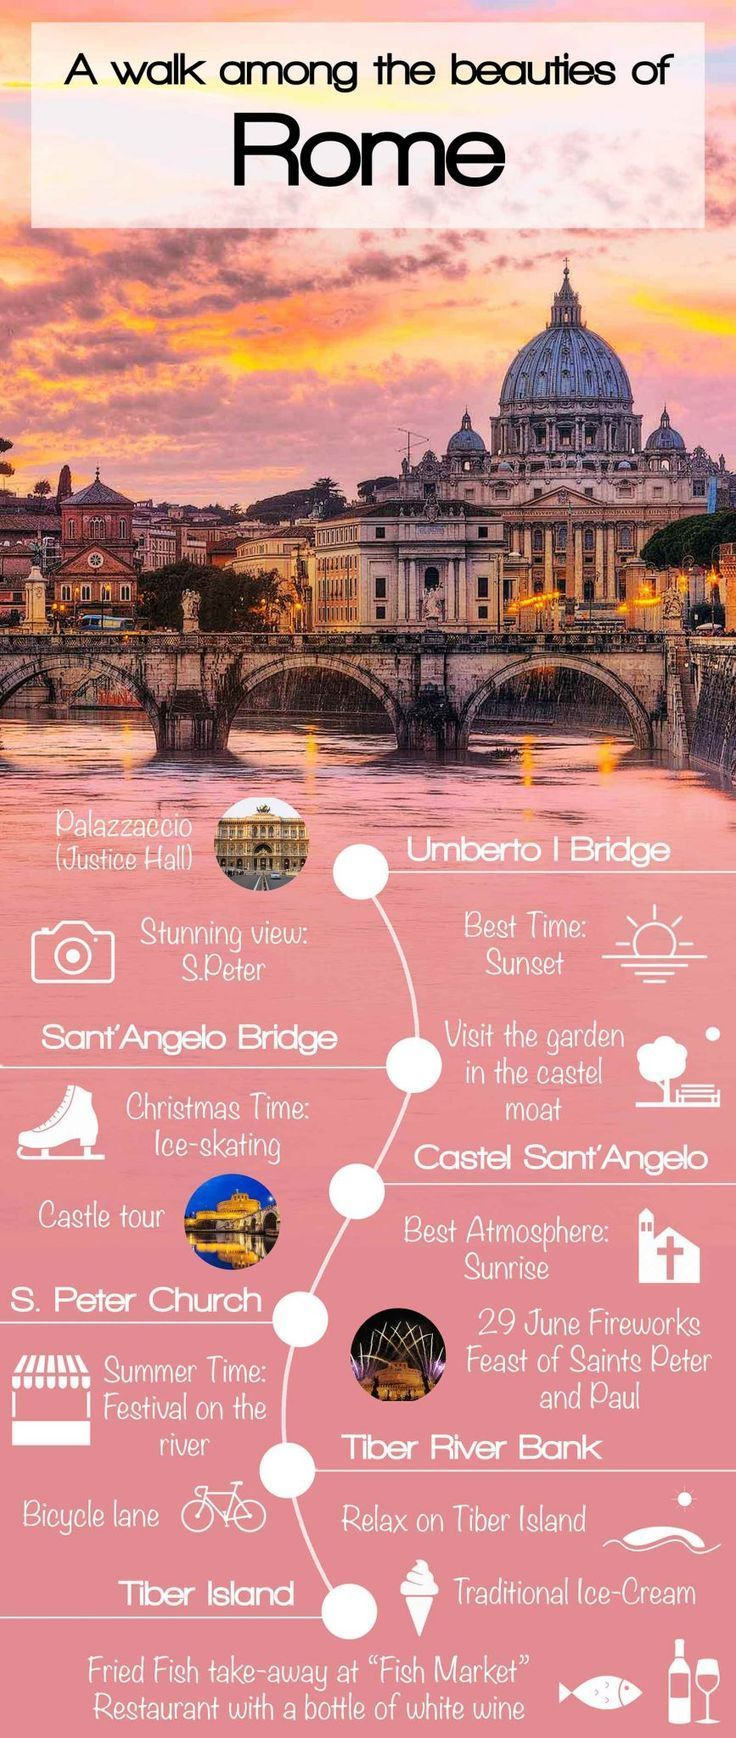 Our journey of discovery through the beauties of Italian peninsula begin with a pleasant walk among the monuments of the Eternal City. Travel in Europe.